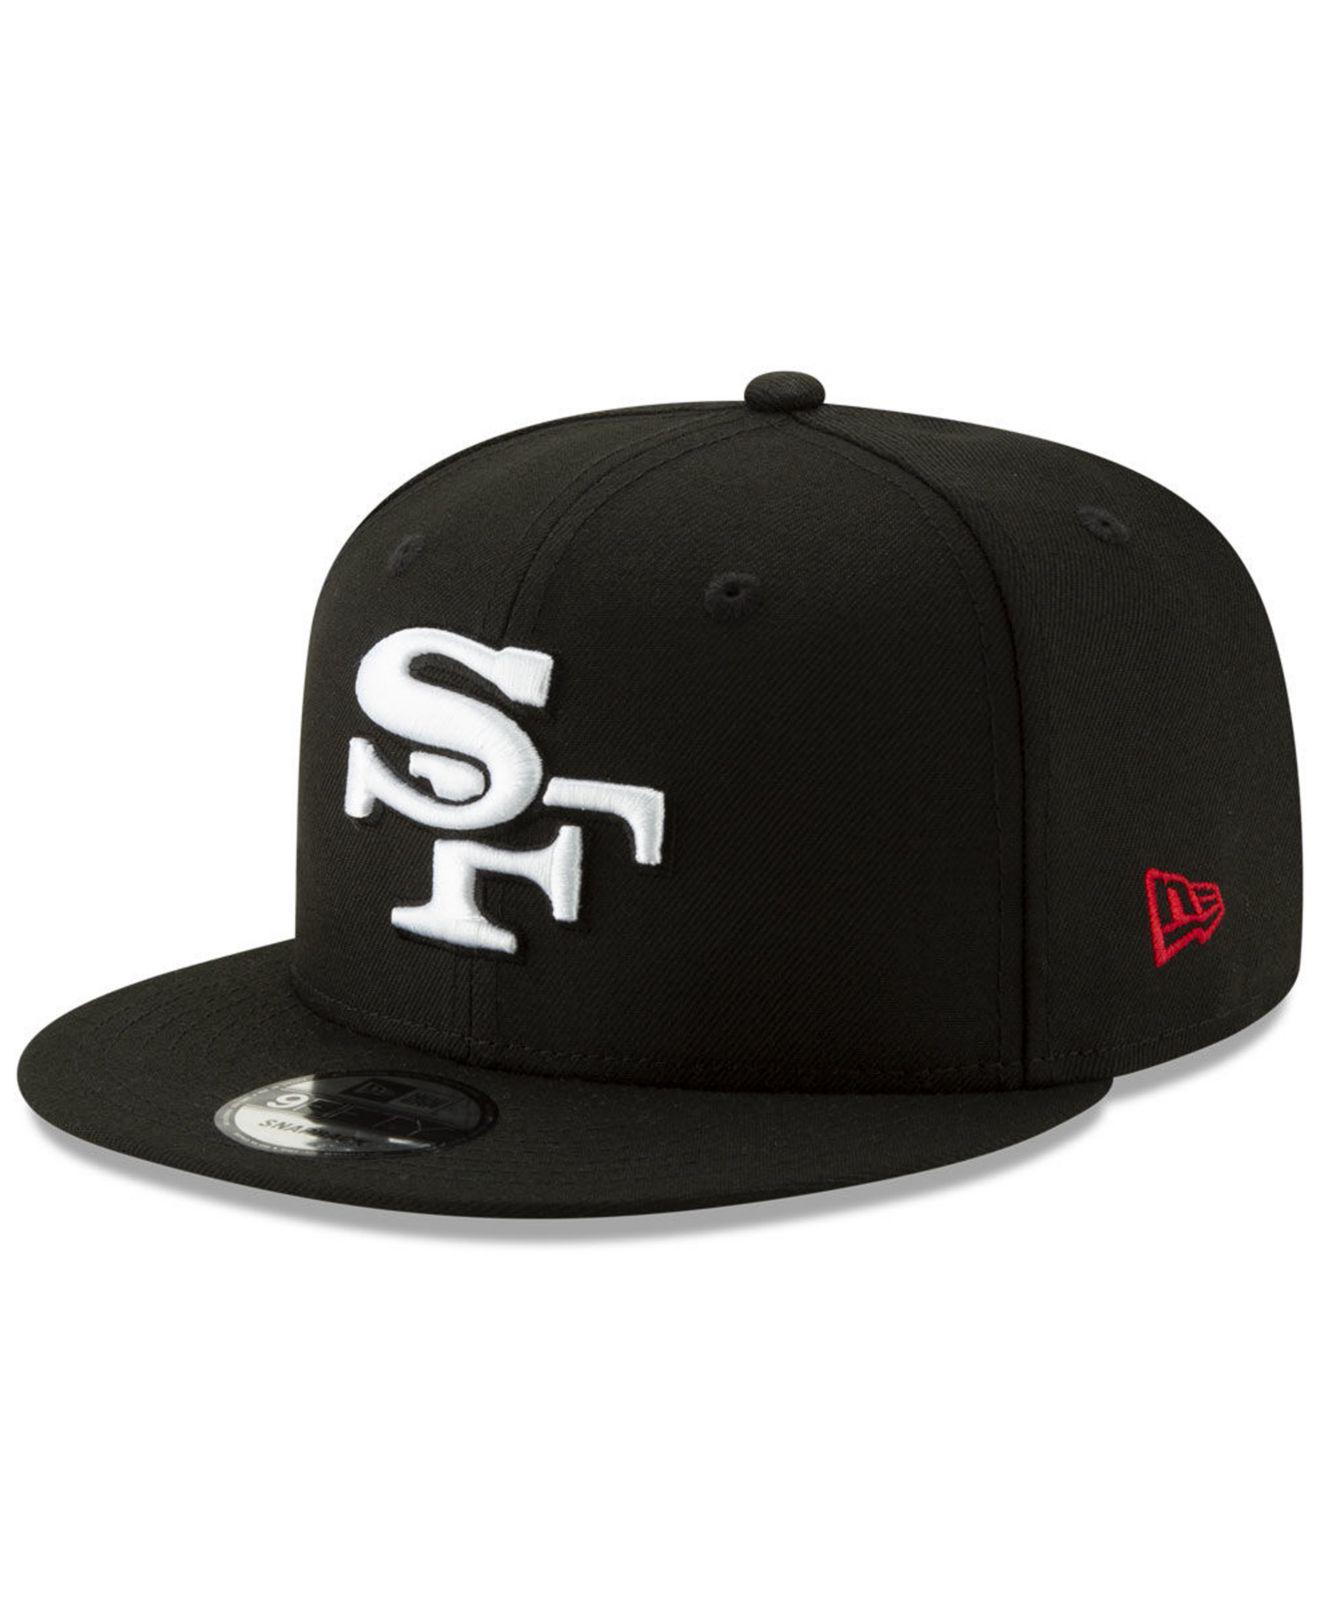 f0daa249a2c Lyst - KTZ San Francisco 49ers Logo Elements Collection 9fifty ...